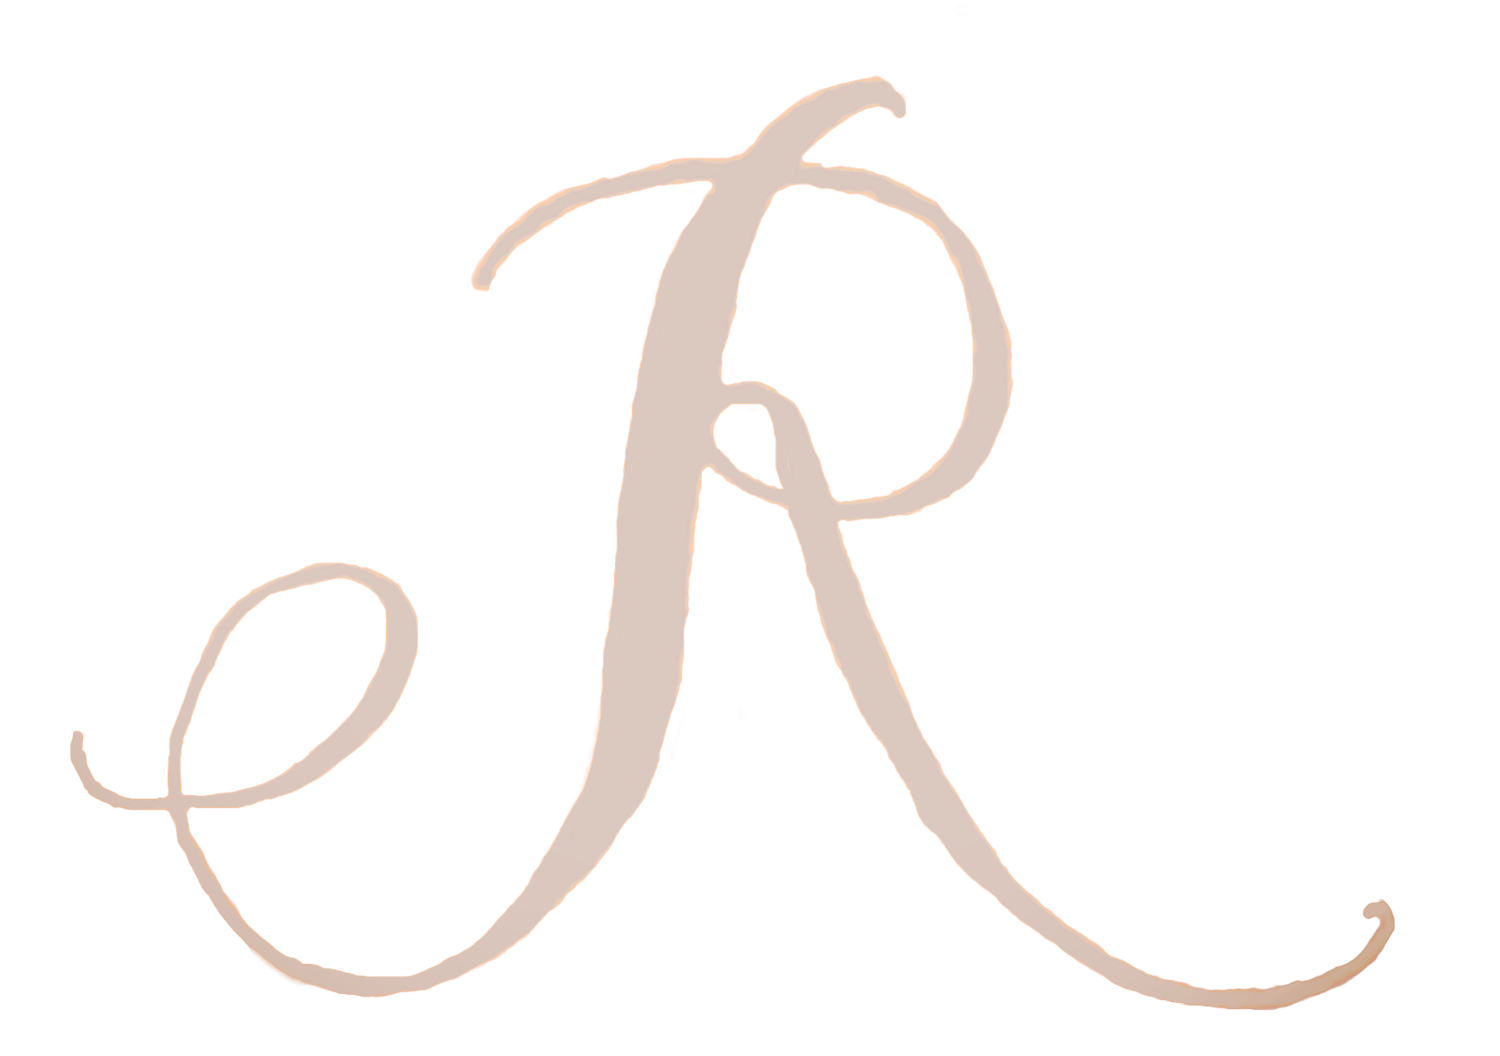 R calligraphy